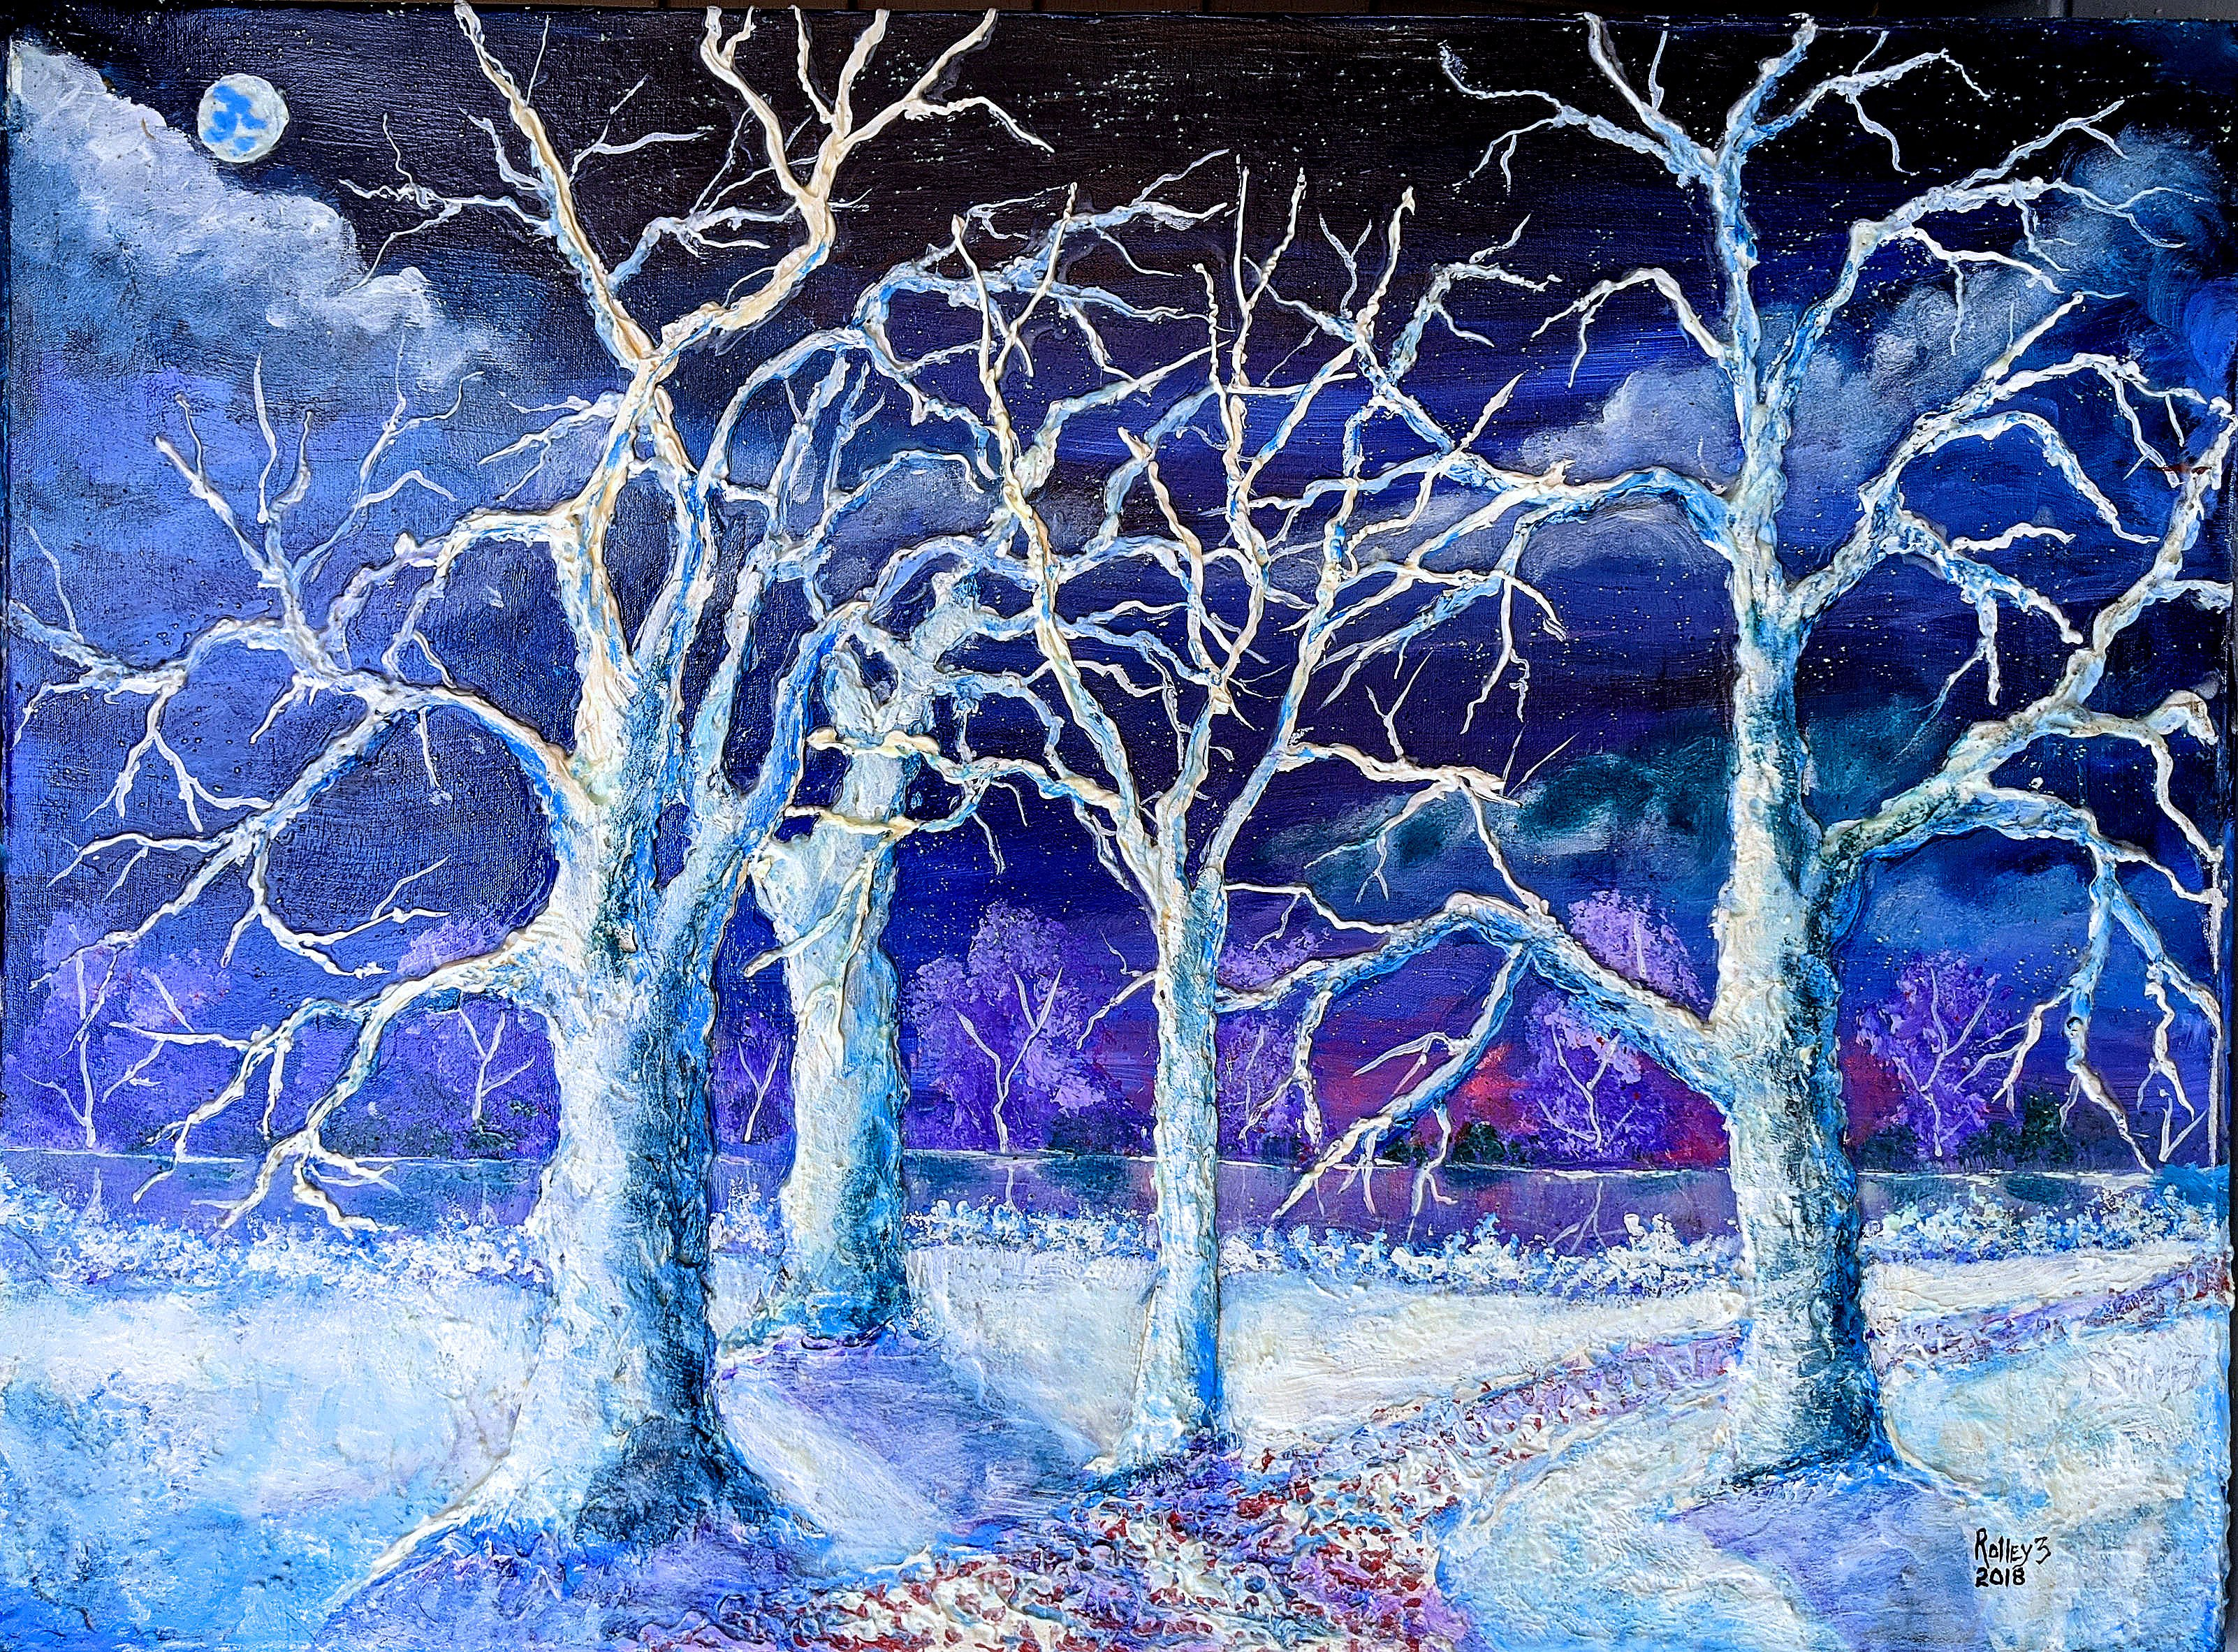 https://0201.nccdn.net/1_2/000/000/089/704/AMERICAN-WHITE-SYCAMORES--30X40-IN.-800---HIGHLIGHTED-WITH-GLOW-IN-DARK-LUMINESCENT-PAINT-3204x2365.jpg